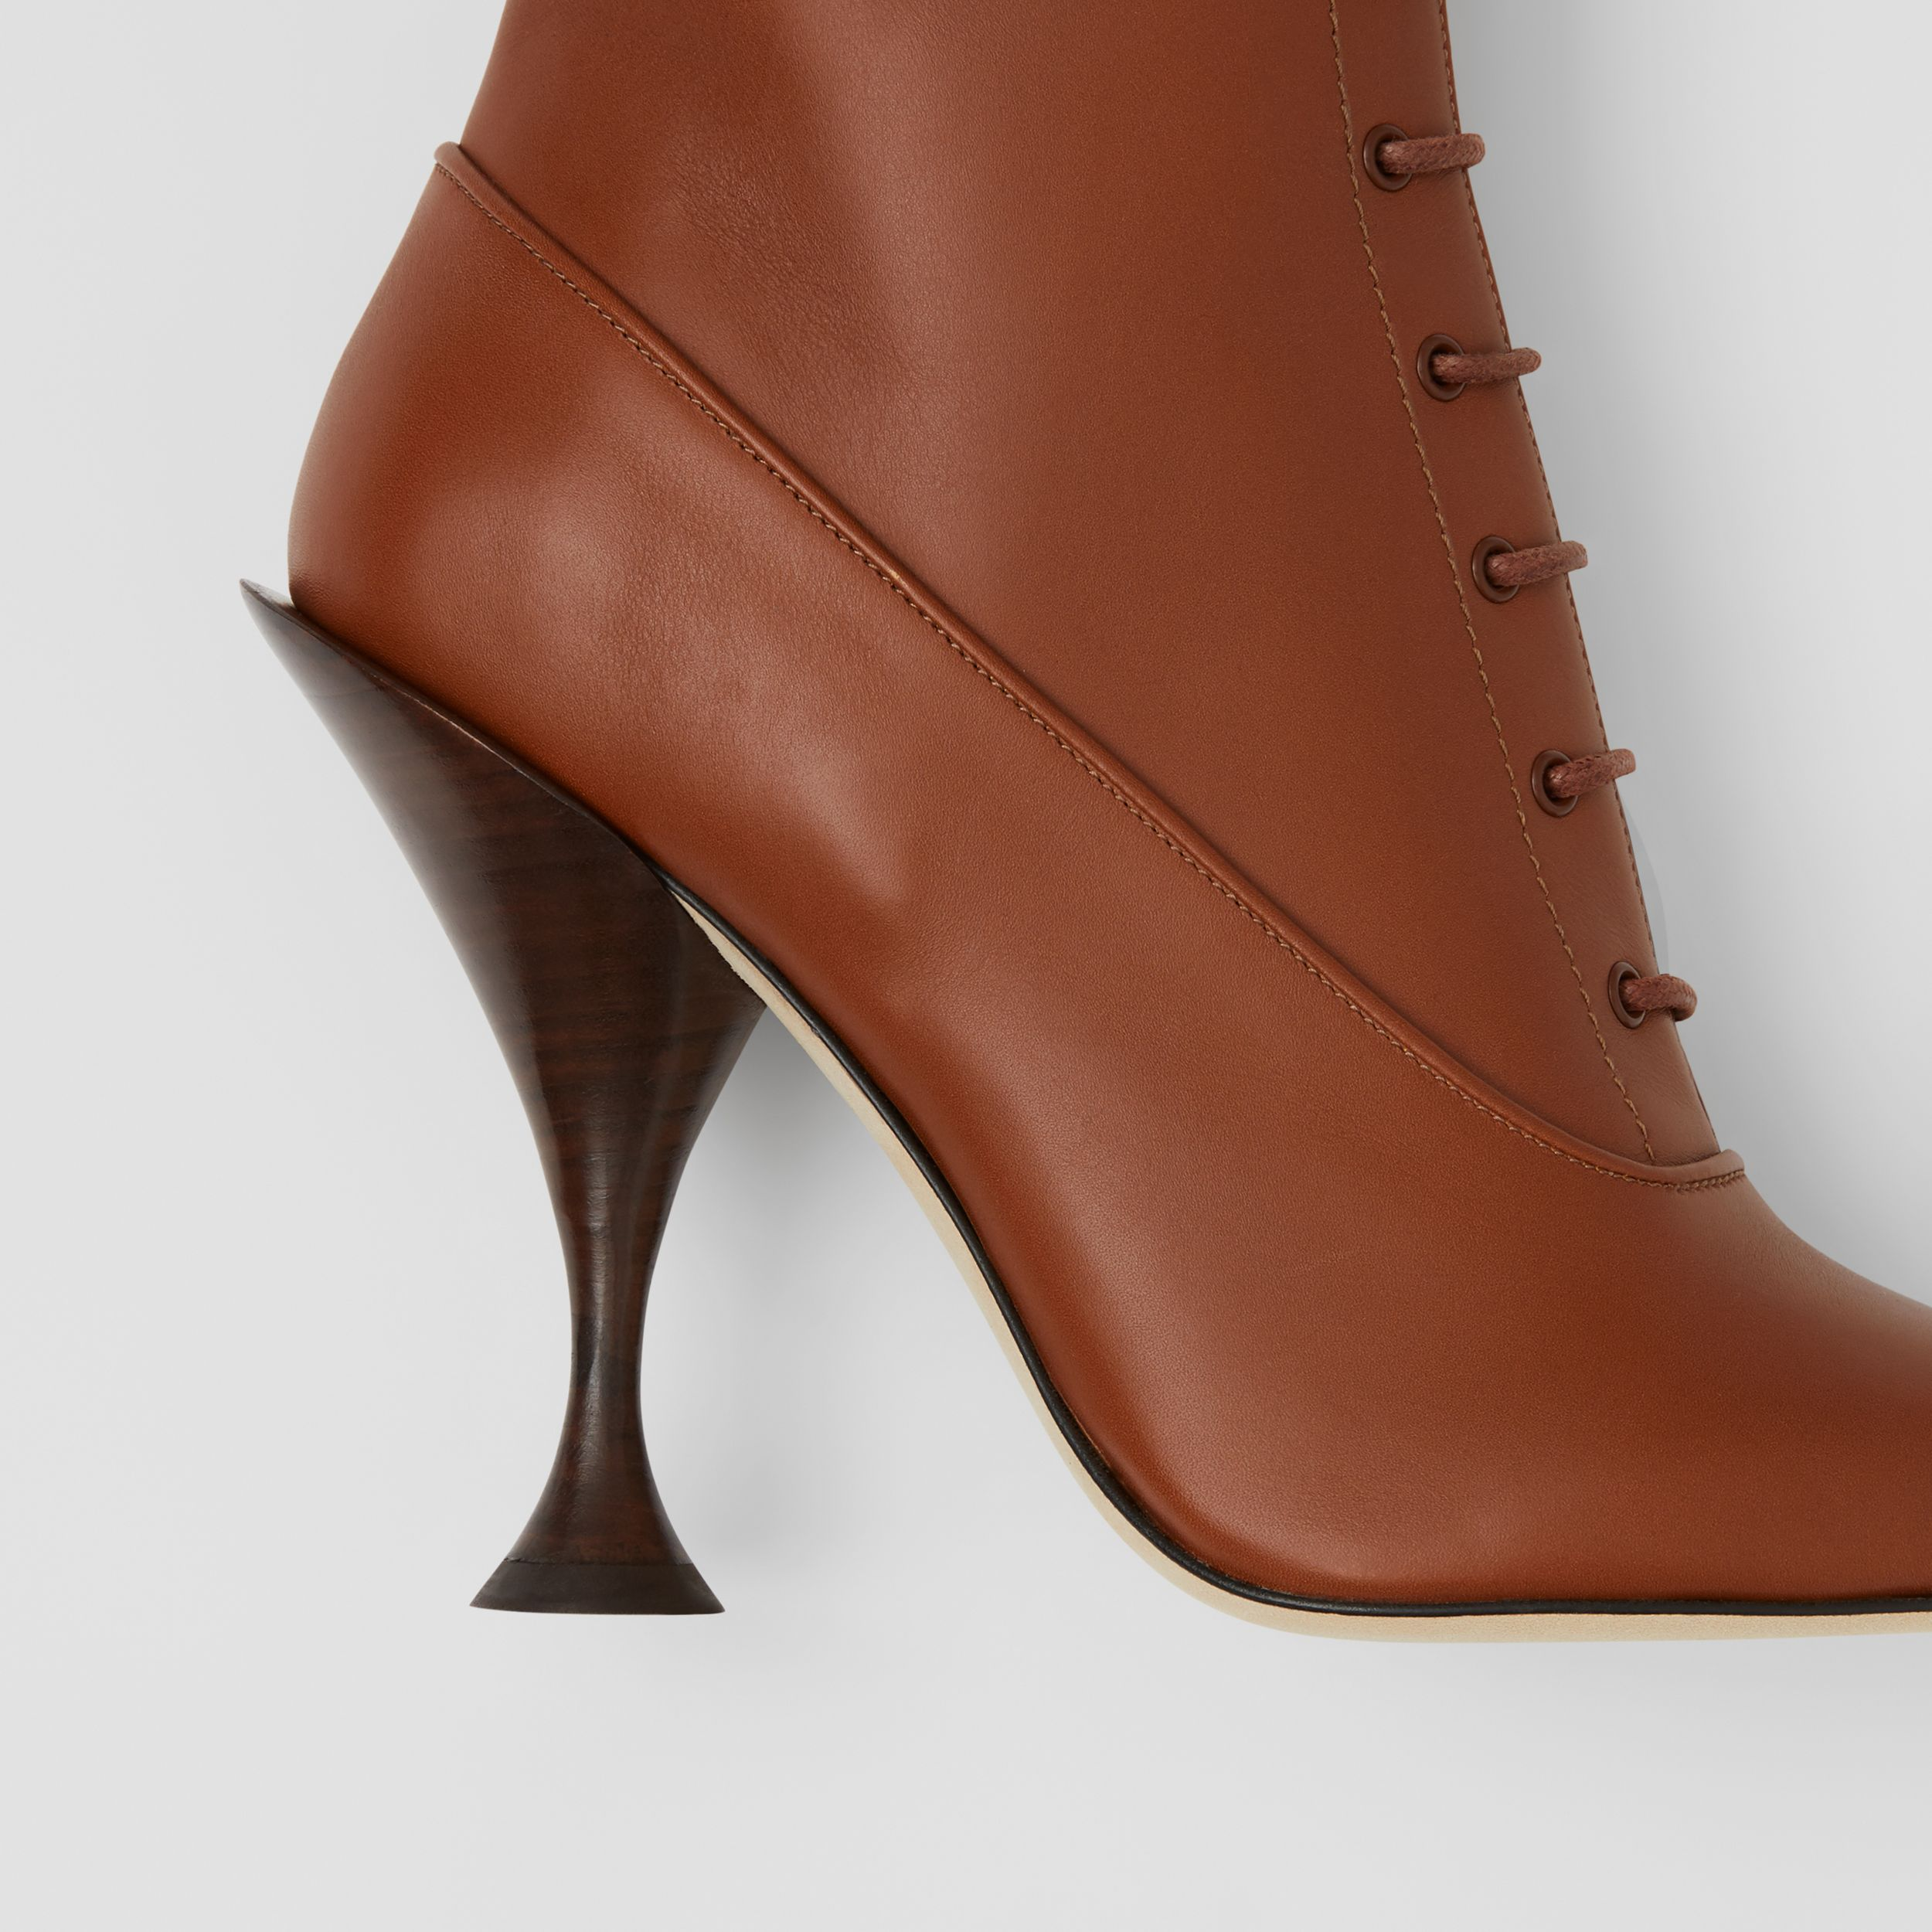 Lambskin Lace-up Ankle Boots in Tan - Women | Burberry Canada - 2